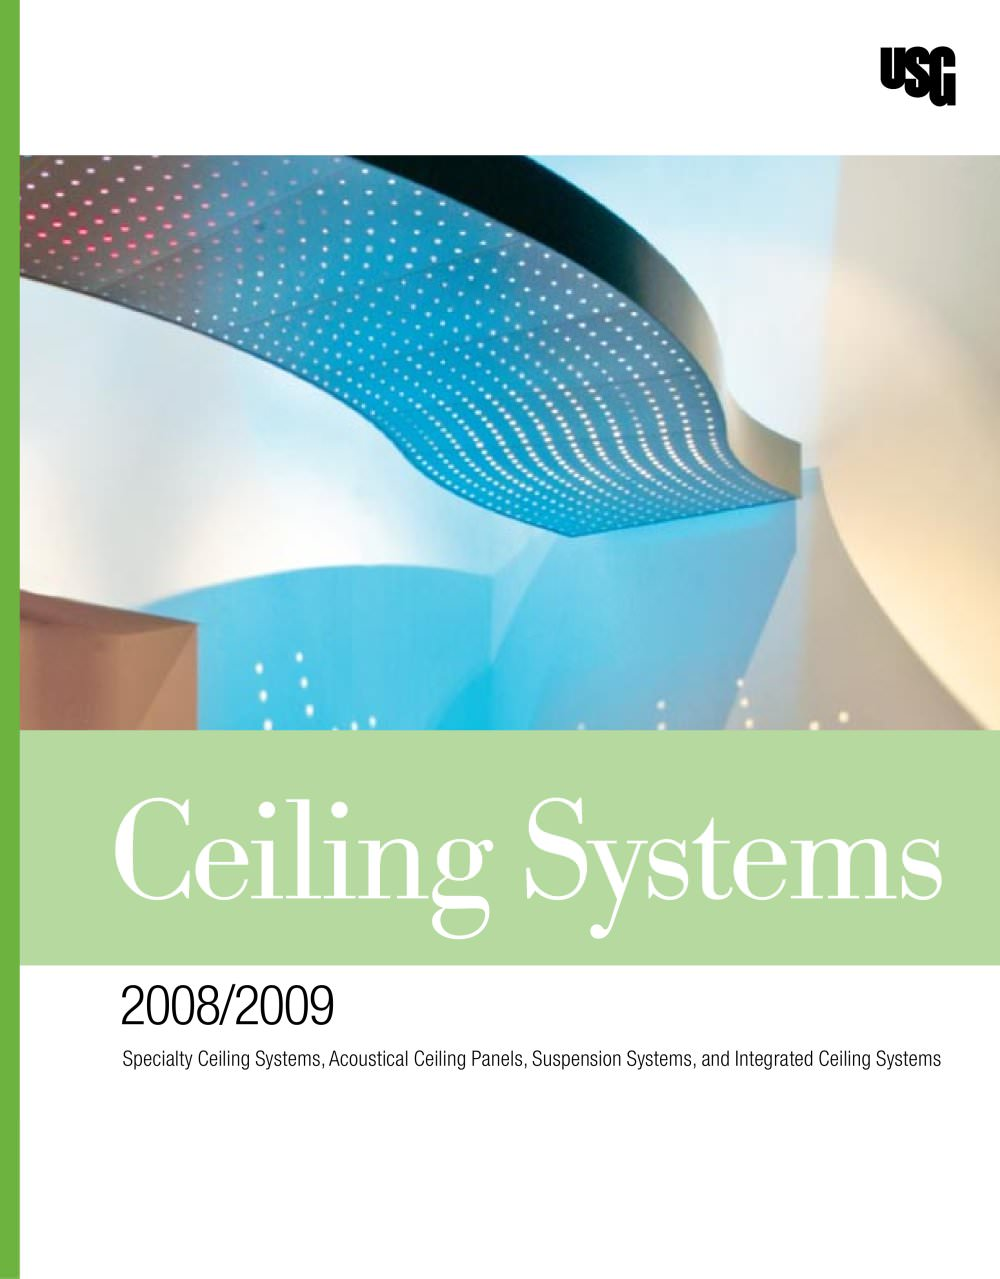 Usg ceiling systems catalog usg pdf catalogues documentation usg ceiling systems catalog 1 330 pages dailygadgetfo Images